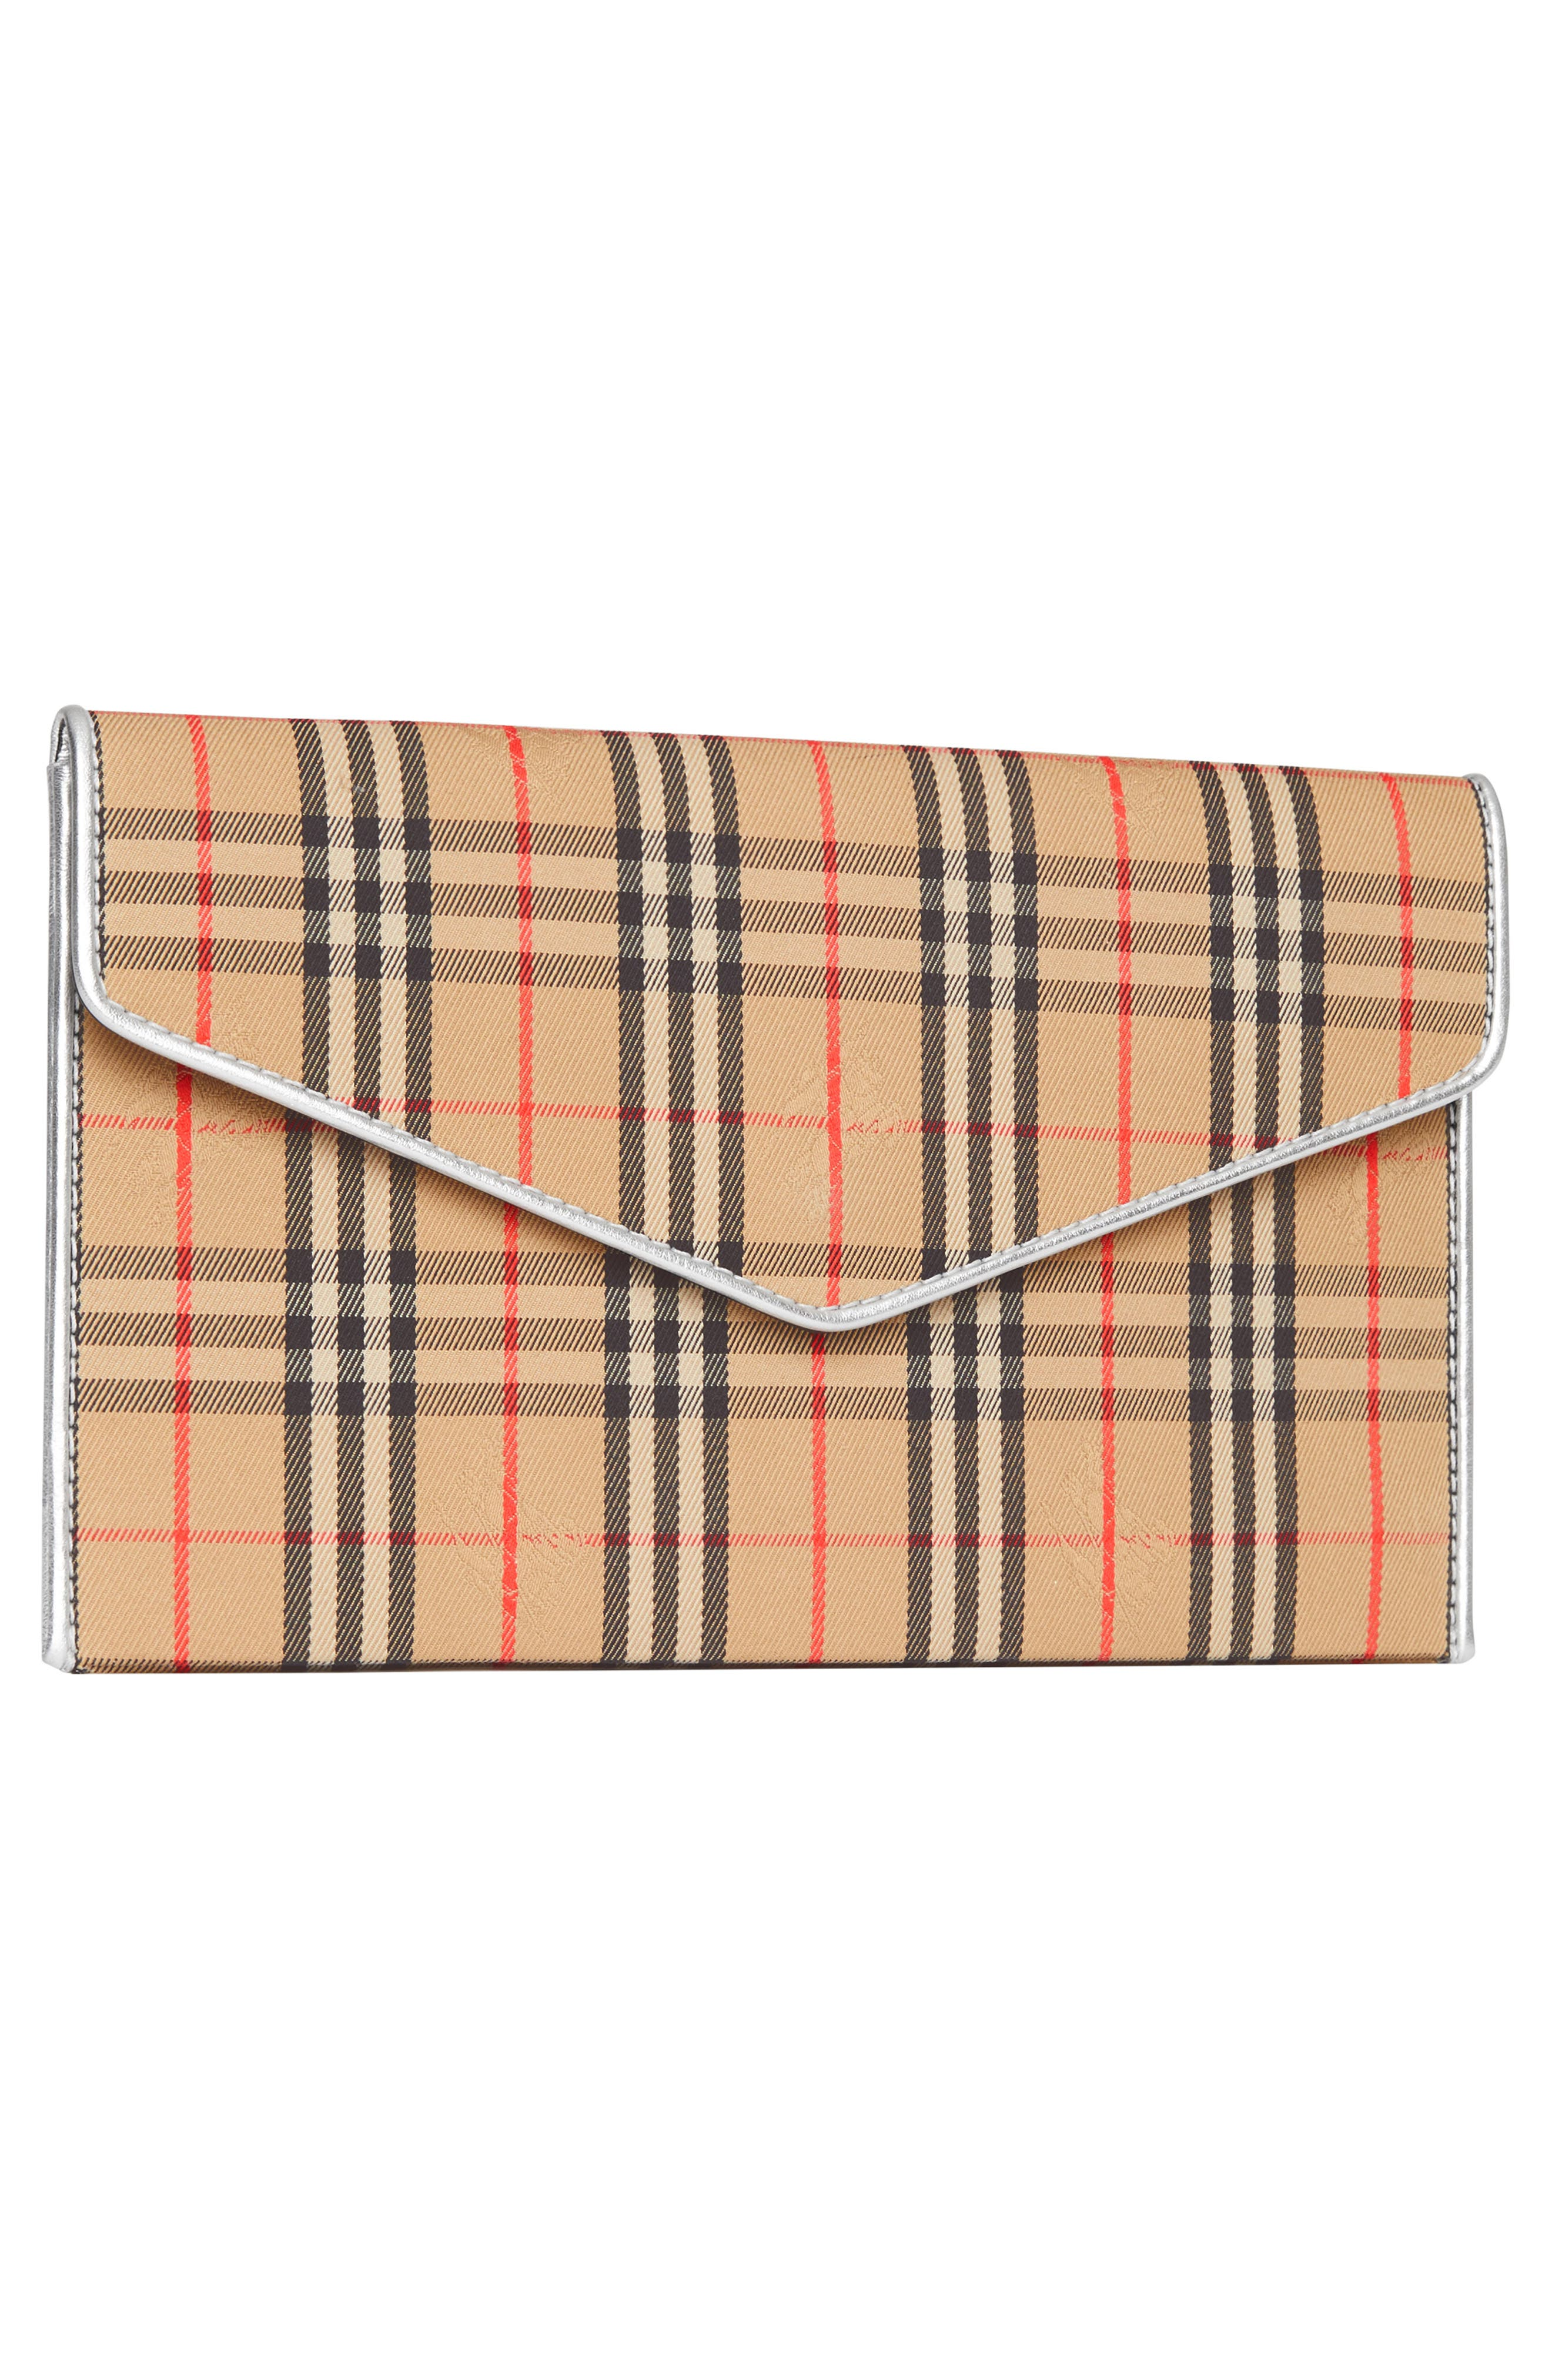 1983 Check Cotton & Leather Envelope Clutch,                             Alternate thumbnail 5, color,                             ANTIQUE YELLOW/ SILVER